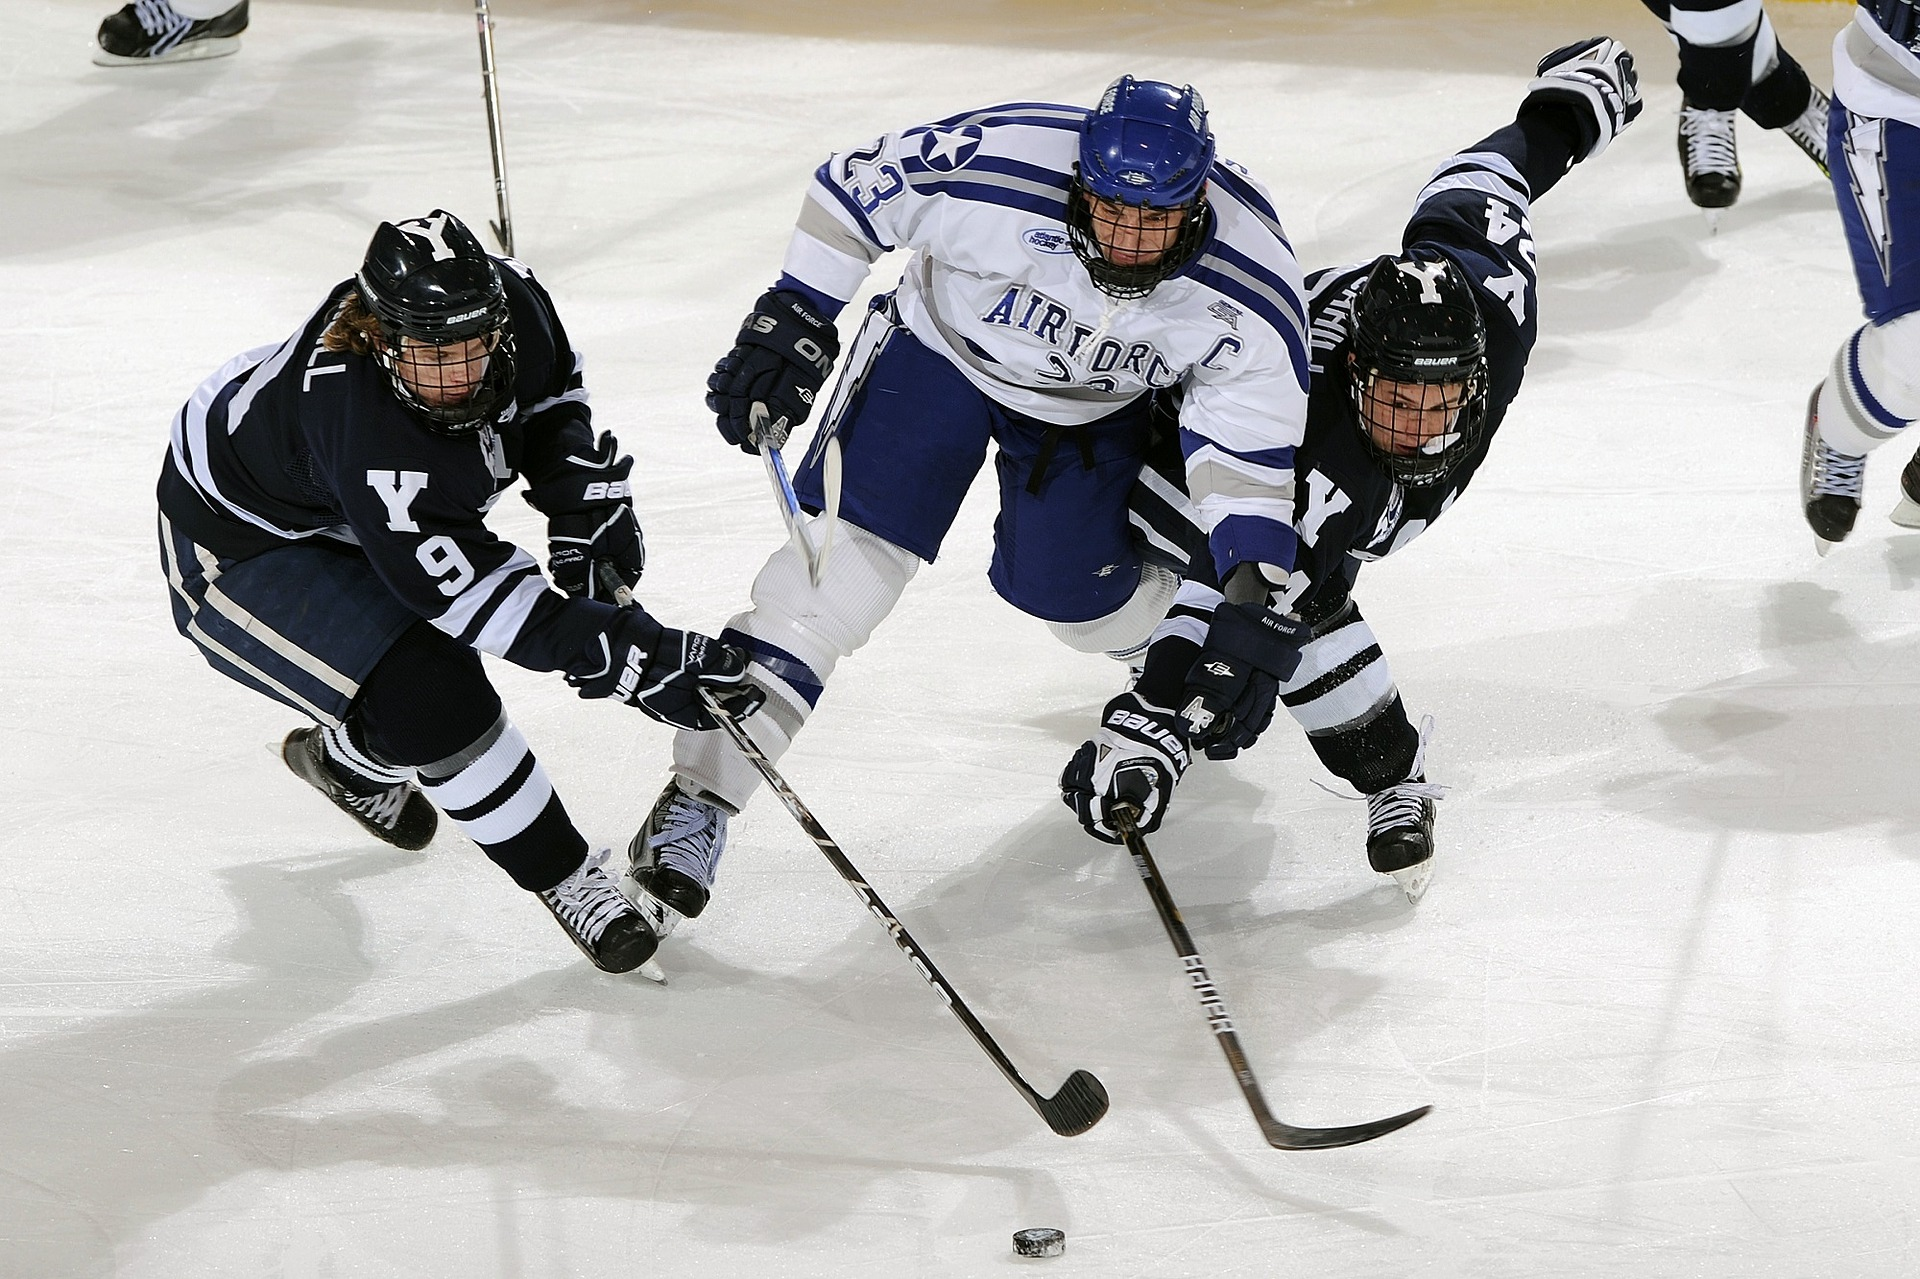 picture of men playing ice hockey